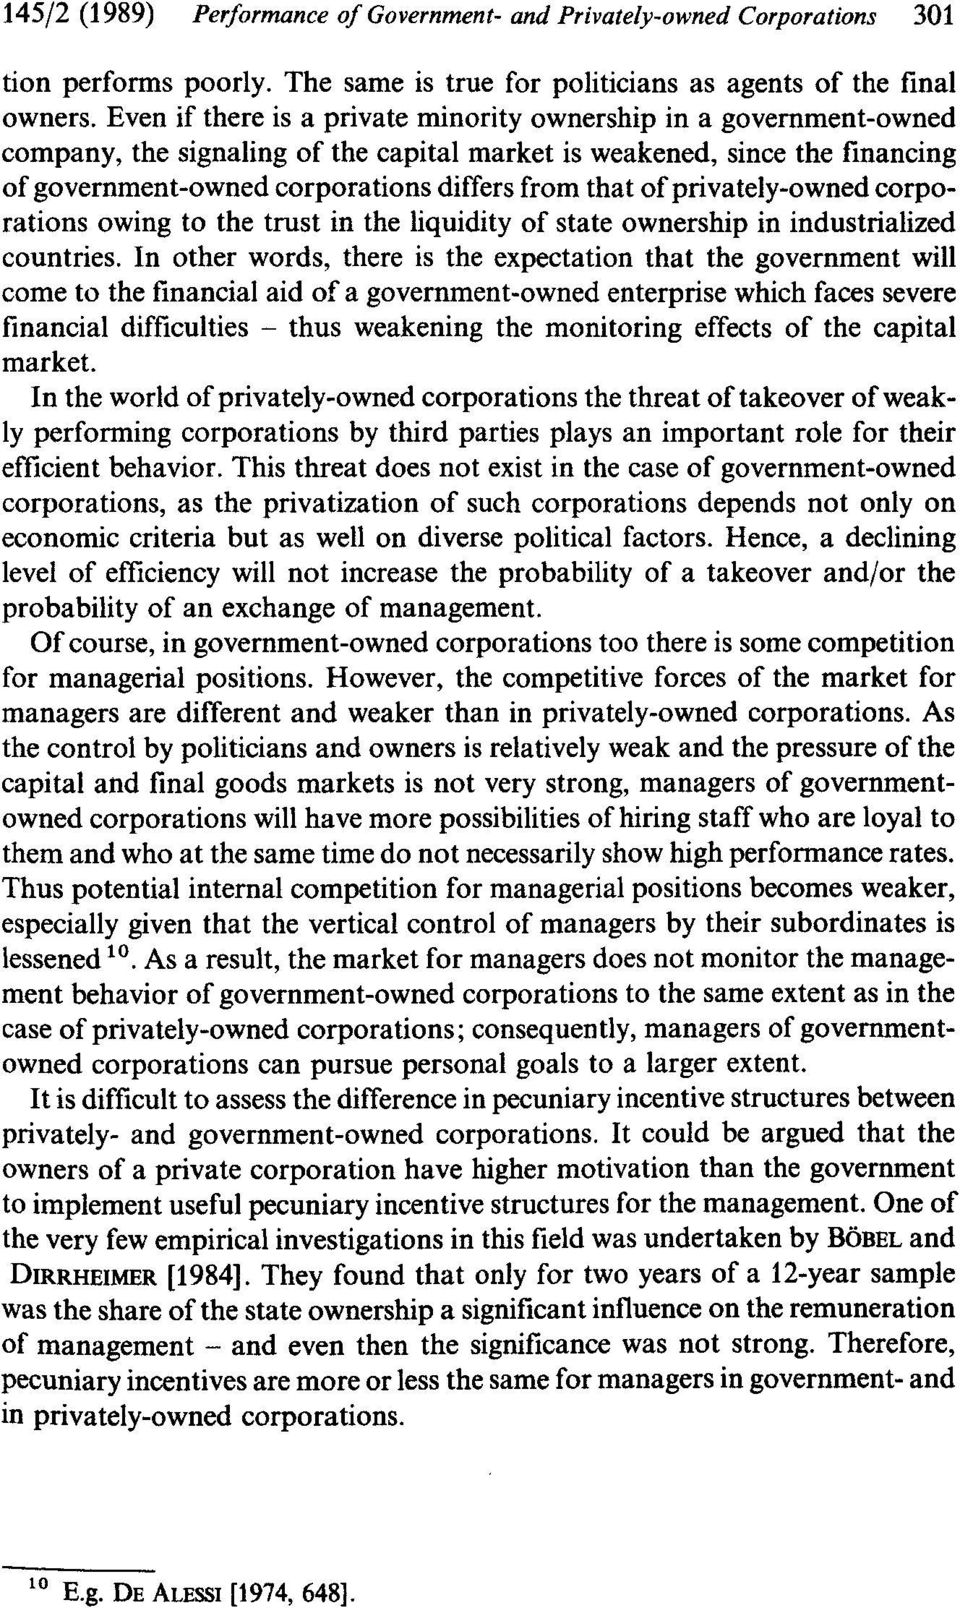 privately-owned corporations owing to the trust in the liquidity of state ownership in industrialized countries.